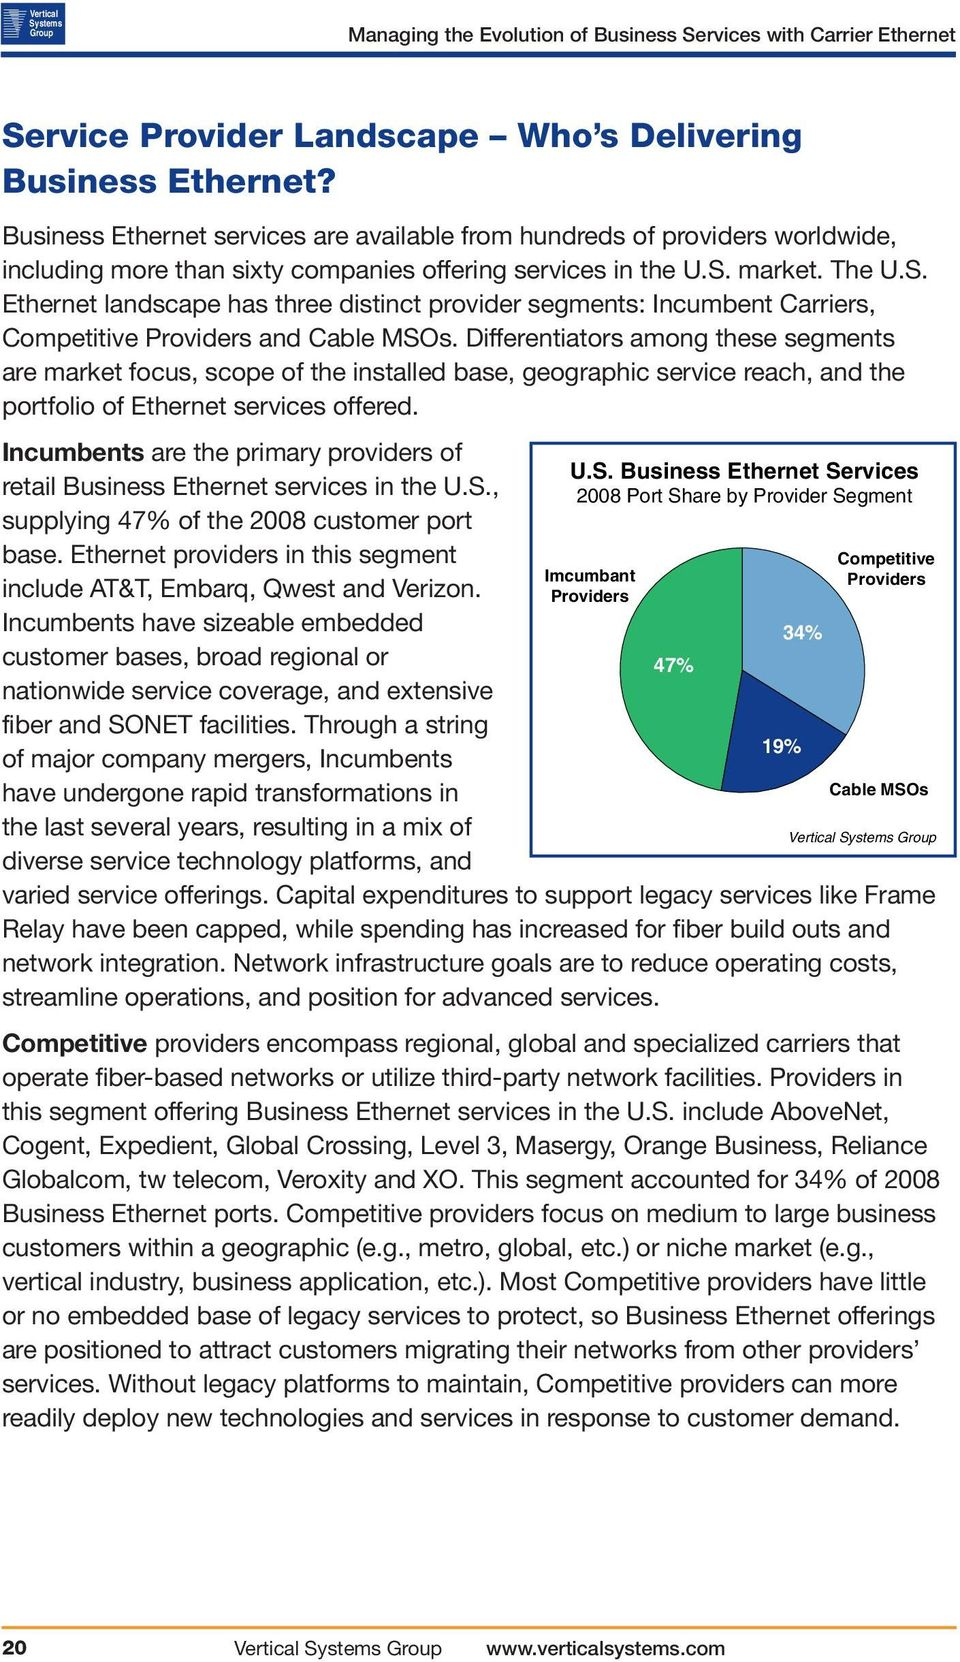 market. The U.S. Ethernet landscape has three distinct provider segments: Incumbent Carriers, Competitive Providers and Cable MSOs.